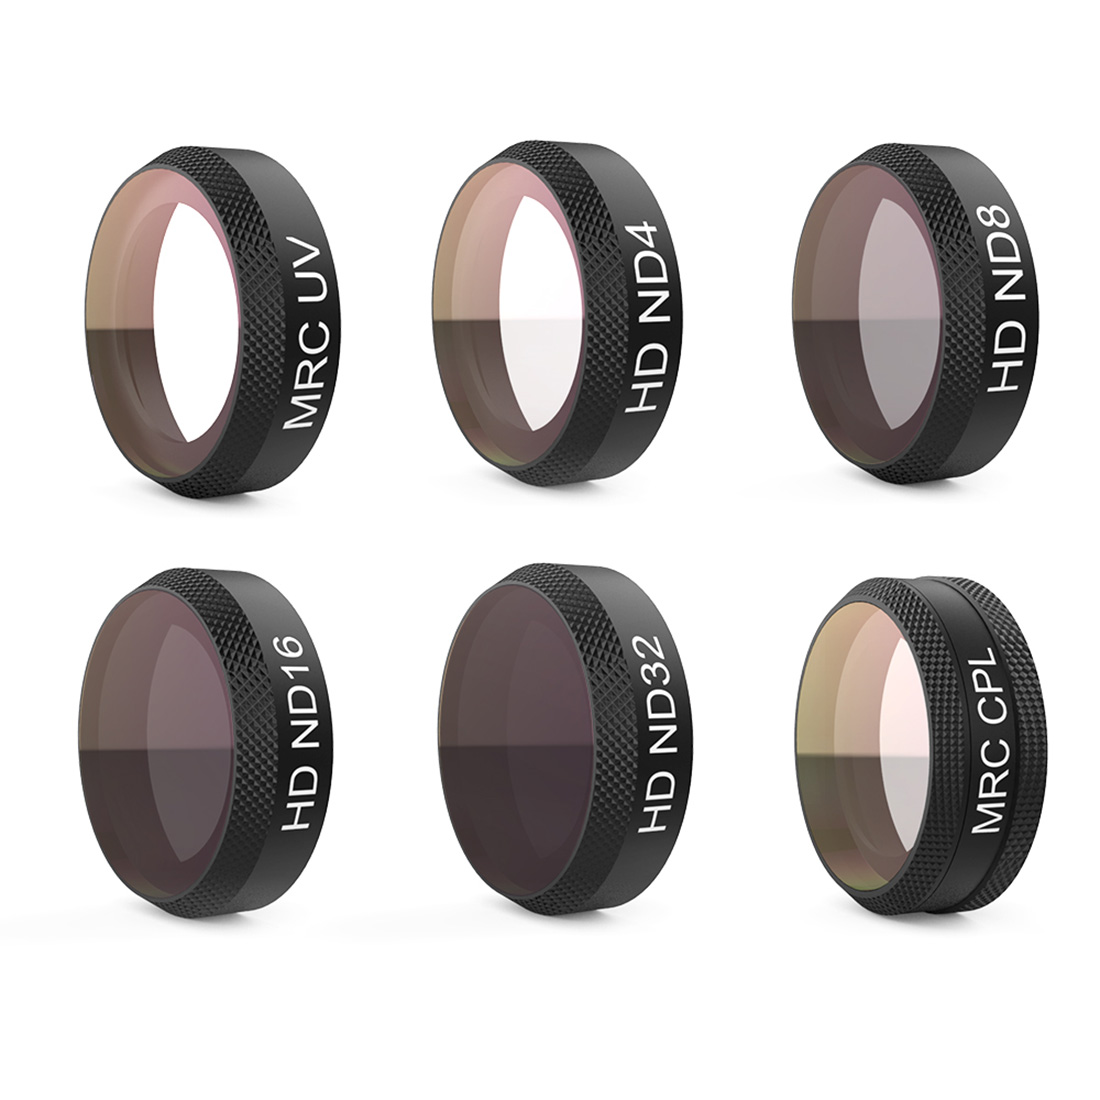 PGYTECH 6Pcs UV+ND4+ND8+ND16+ND32+CPL Filter Kit Lens Filters for DJI Mavic Air RC Quadcopter(UV ND4 8 16 32 CPL) 6pcs set pgytech original lens filters for phantom 4 pro drone accessories g hd mcuv nd4 nd8 nd16 nd32 cpl hd filter